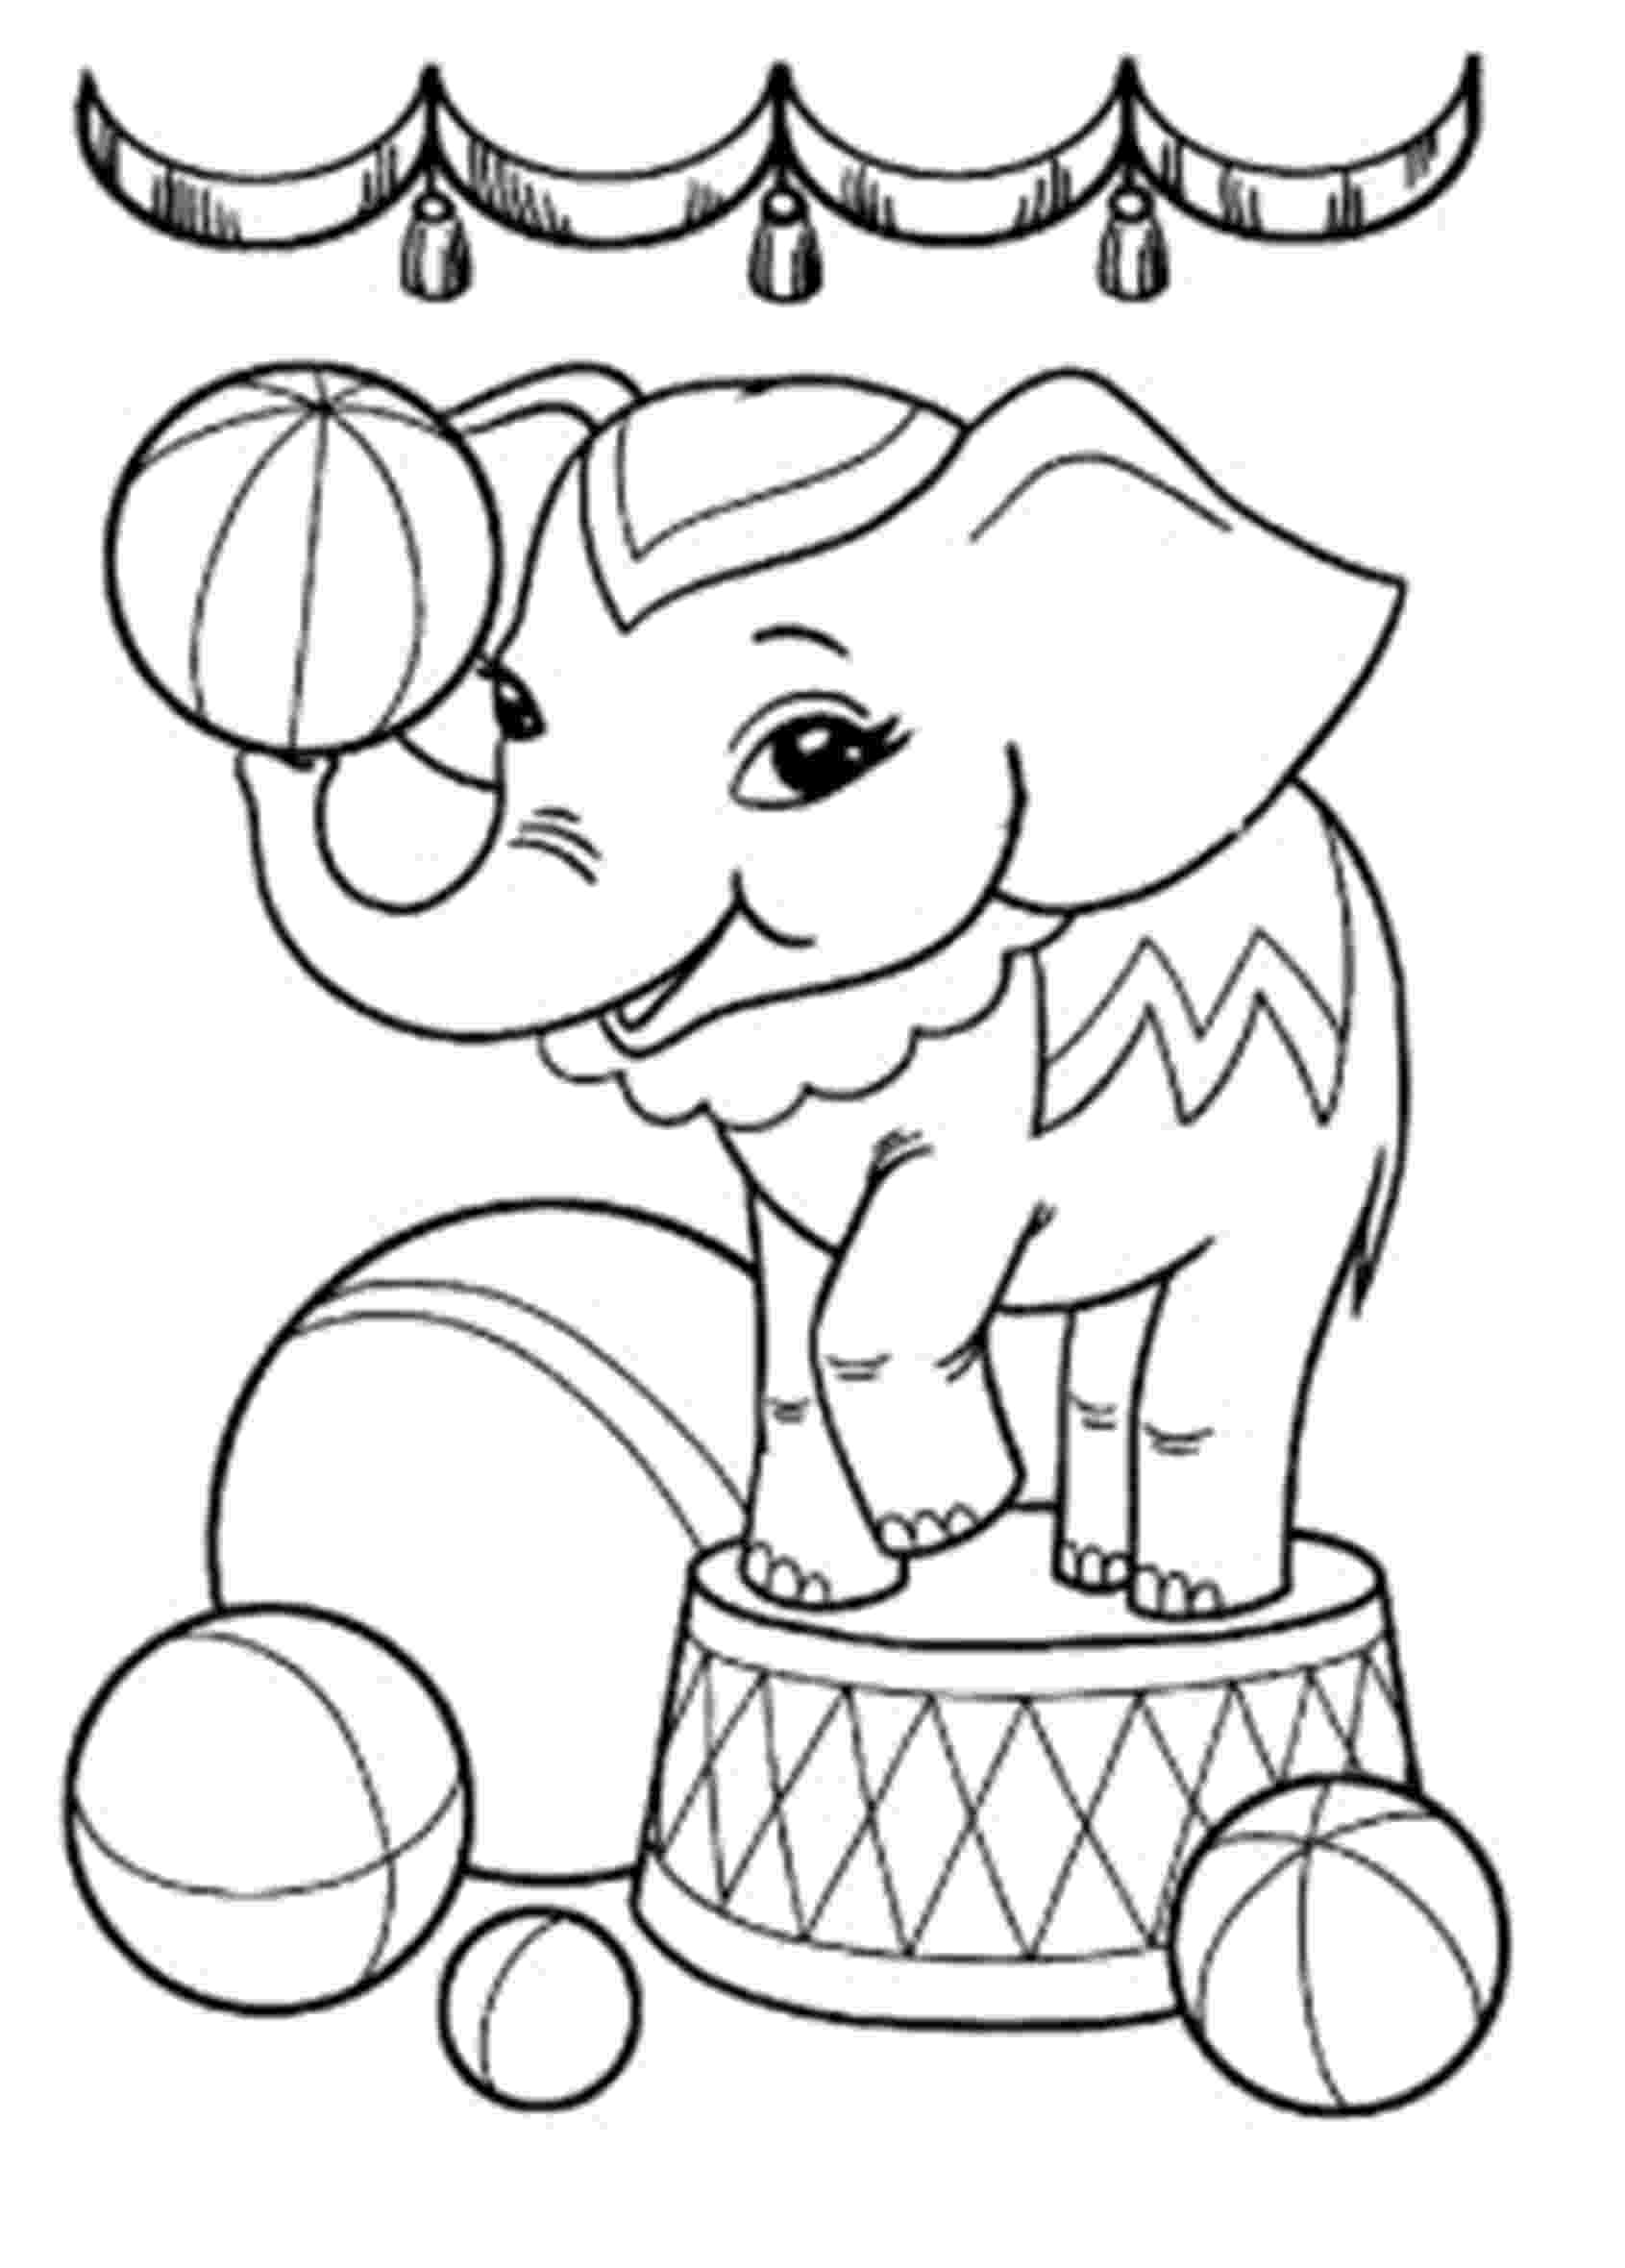 coloring pages elephants black beauty 18 elephant coloring pages free printables coloring elephants pages